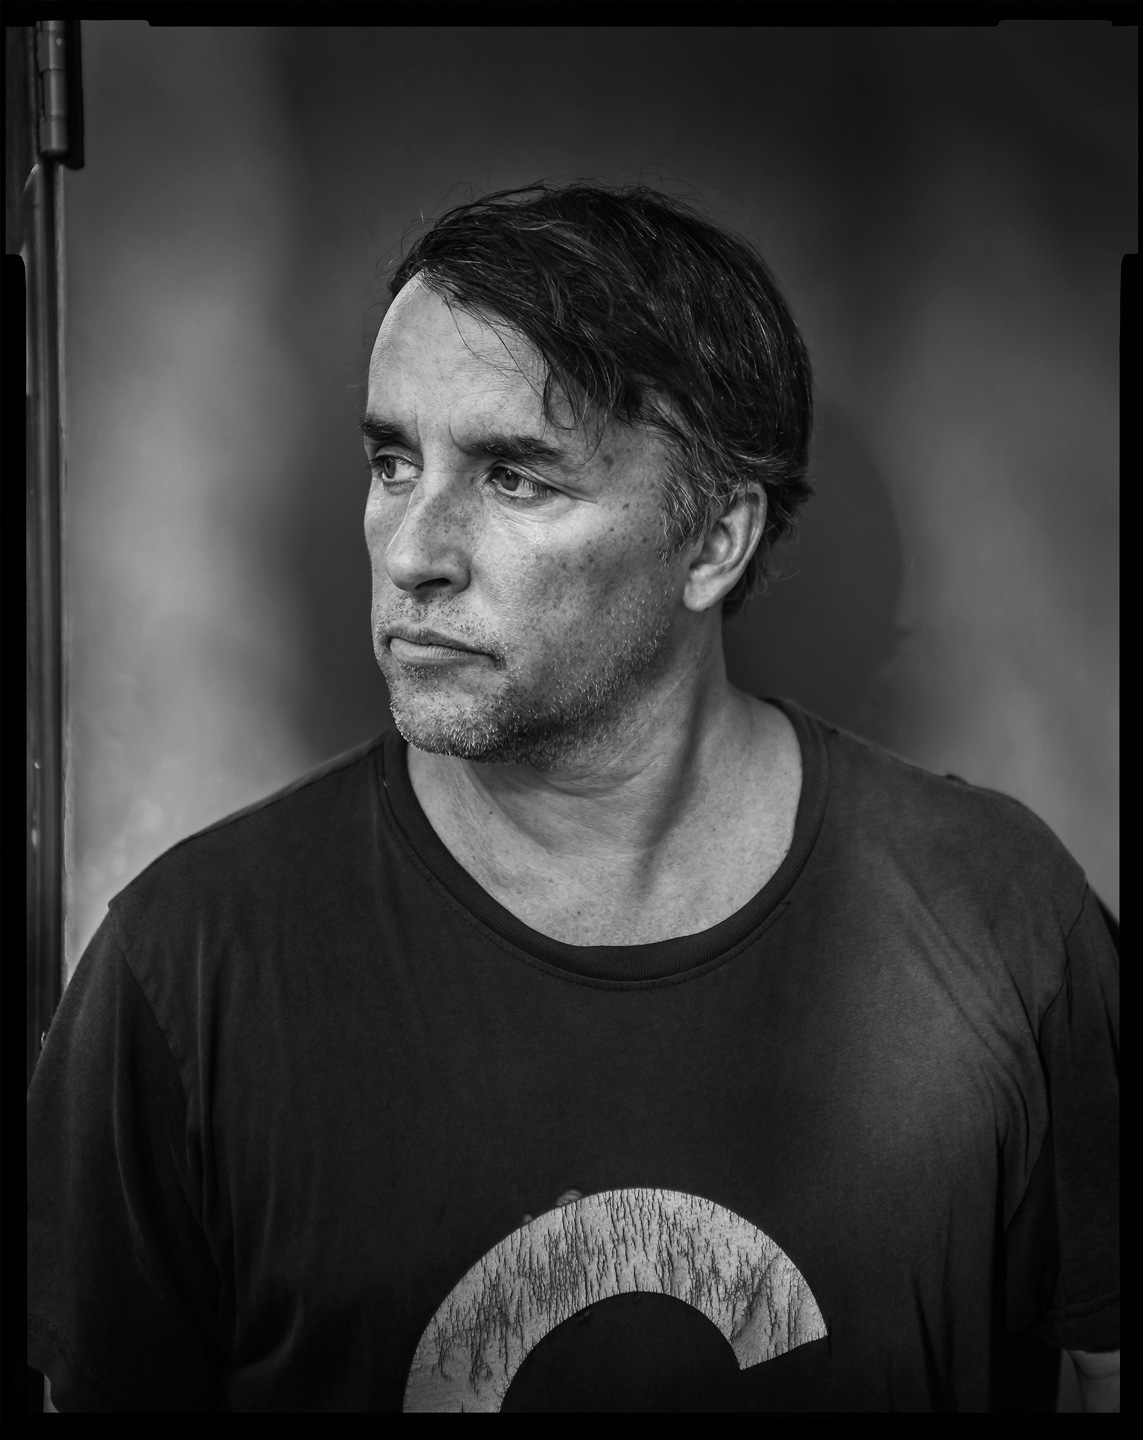 Rick Linklater - Bastrop, TX - New Yorker Magazine